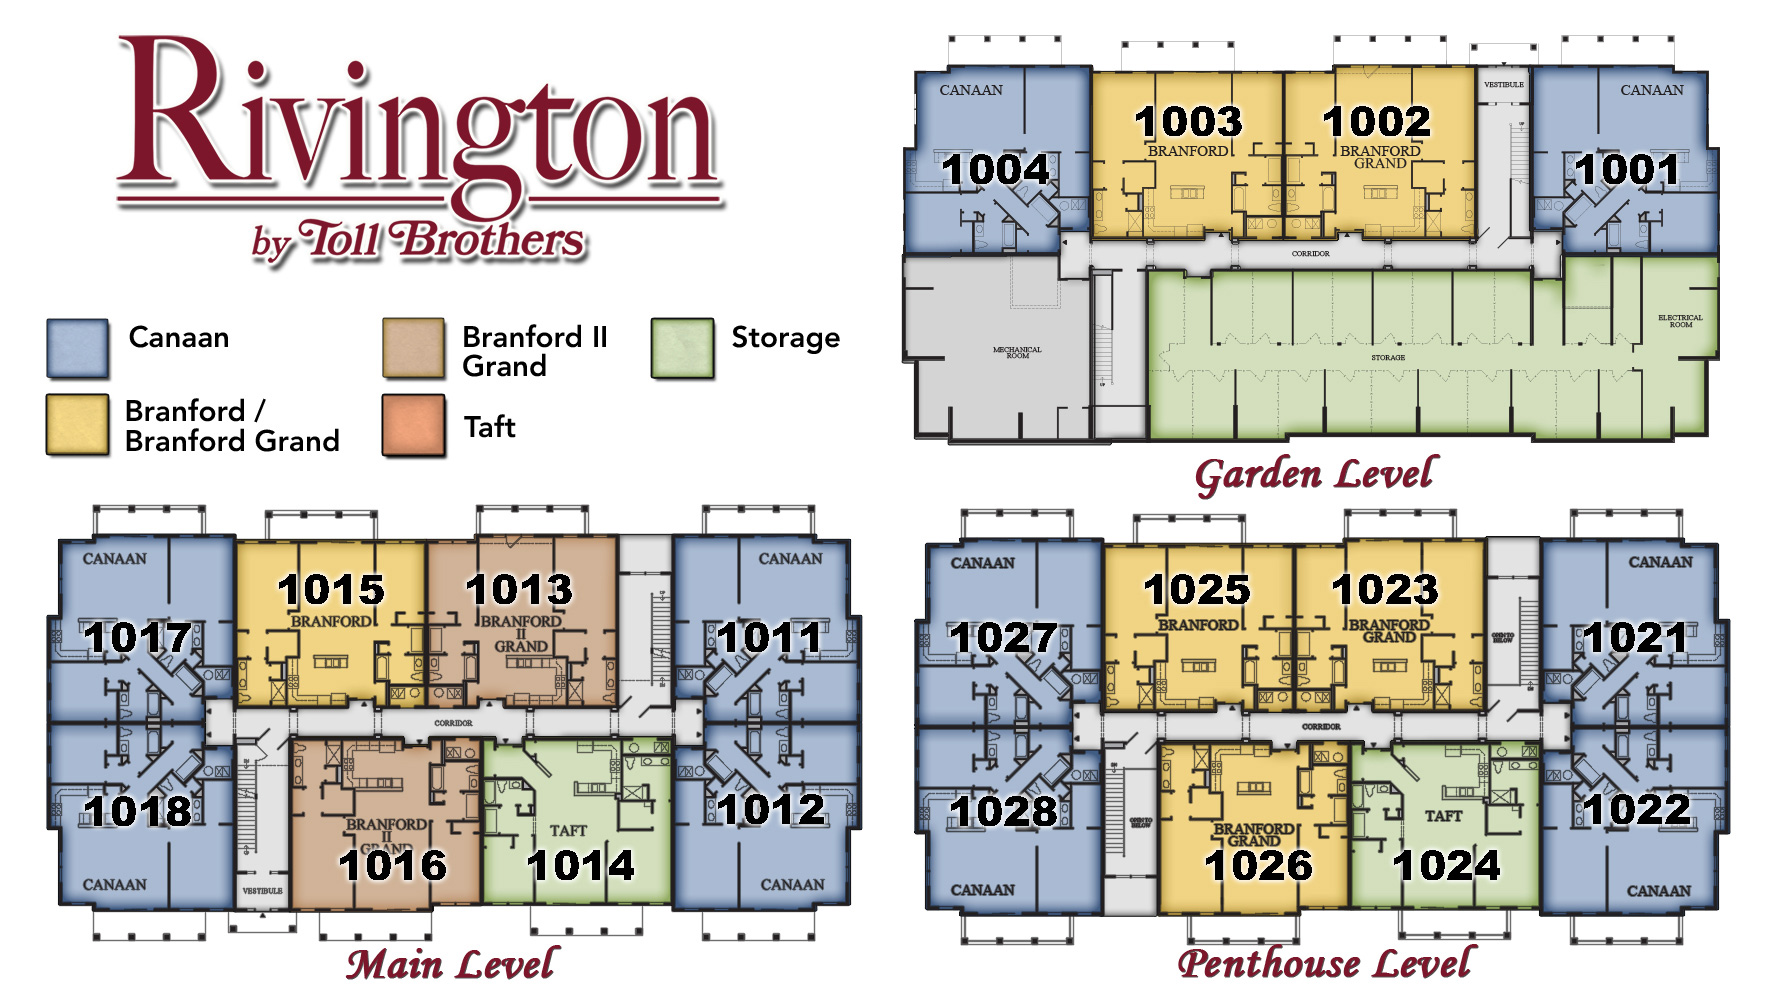 Rivington by Toll Brothers Building 1000 Site Plan